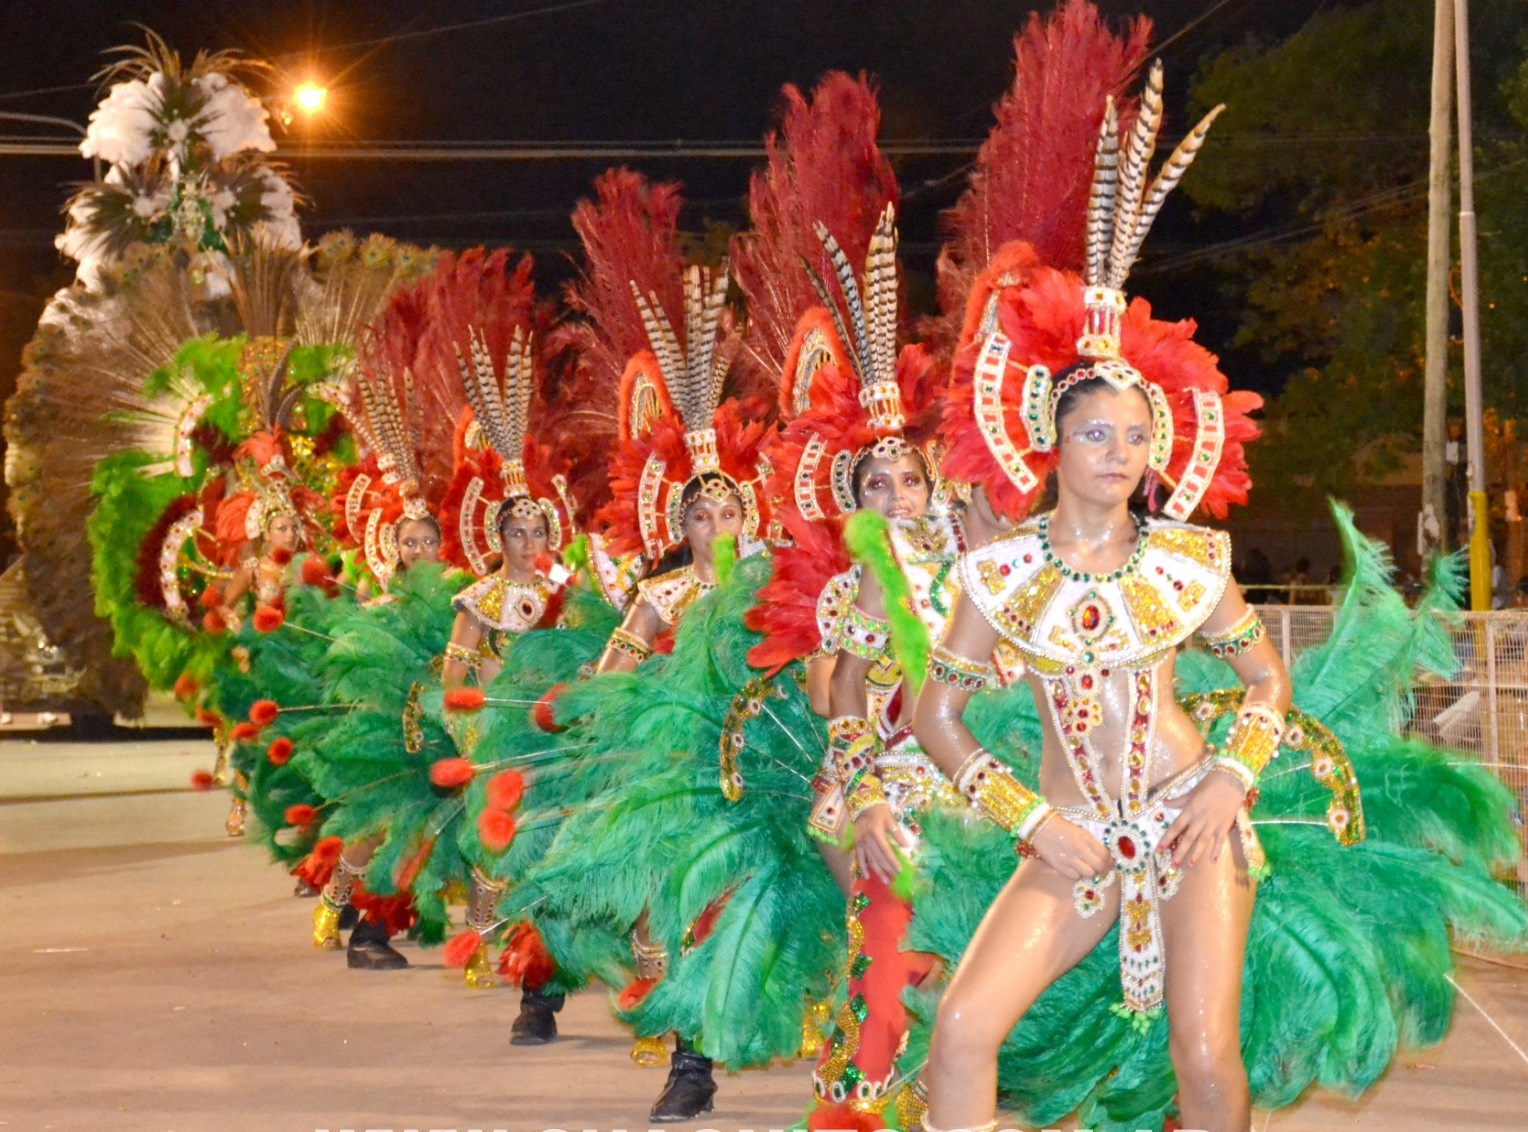 Chaco_carnaval_3